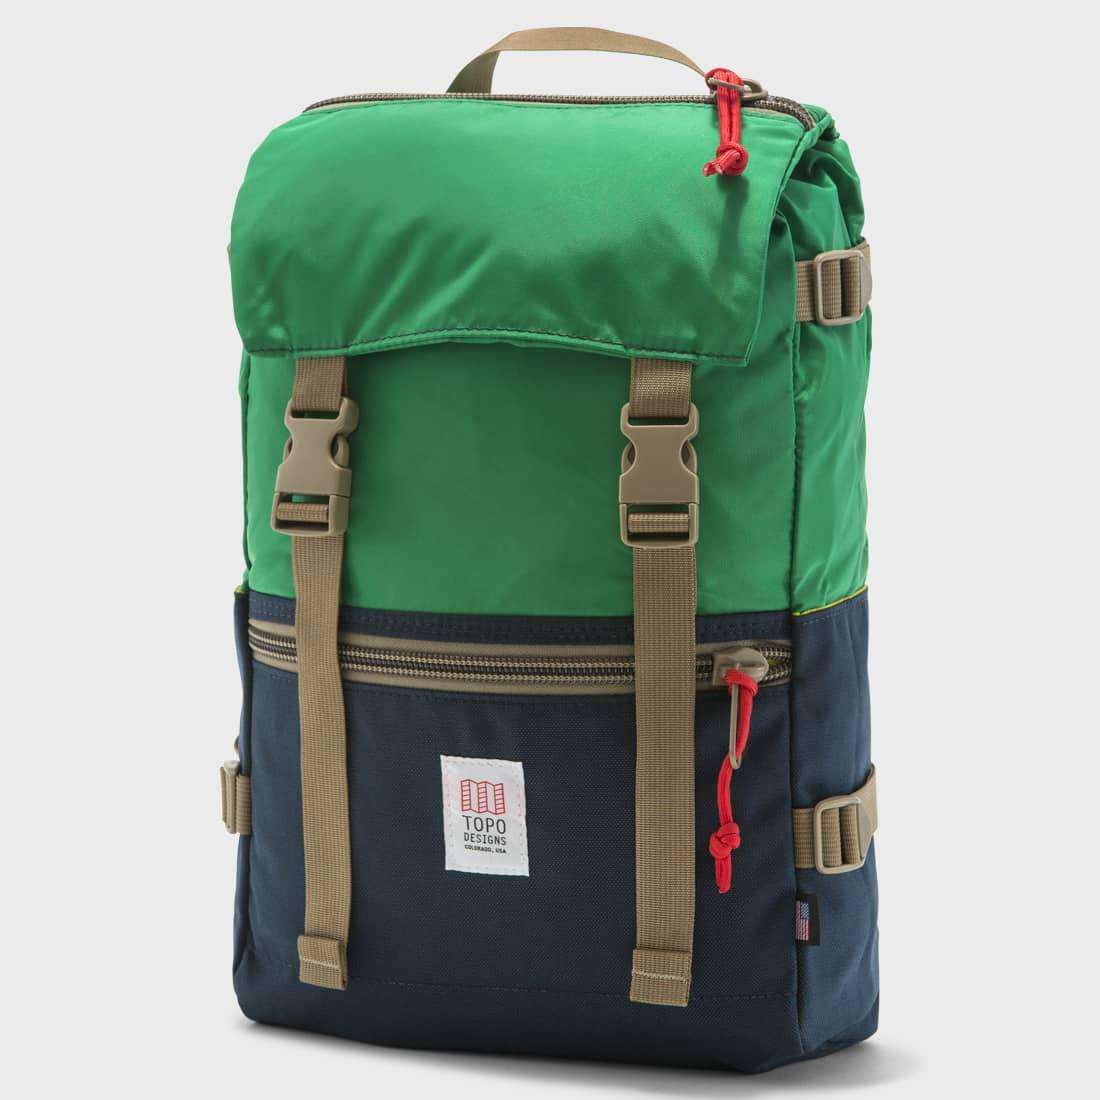 Topo Designs Rover Pack Kelly / Navy